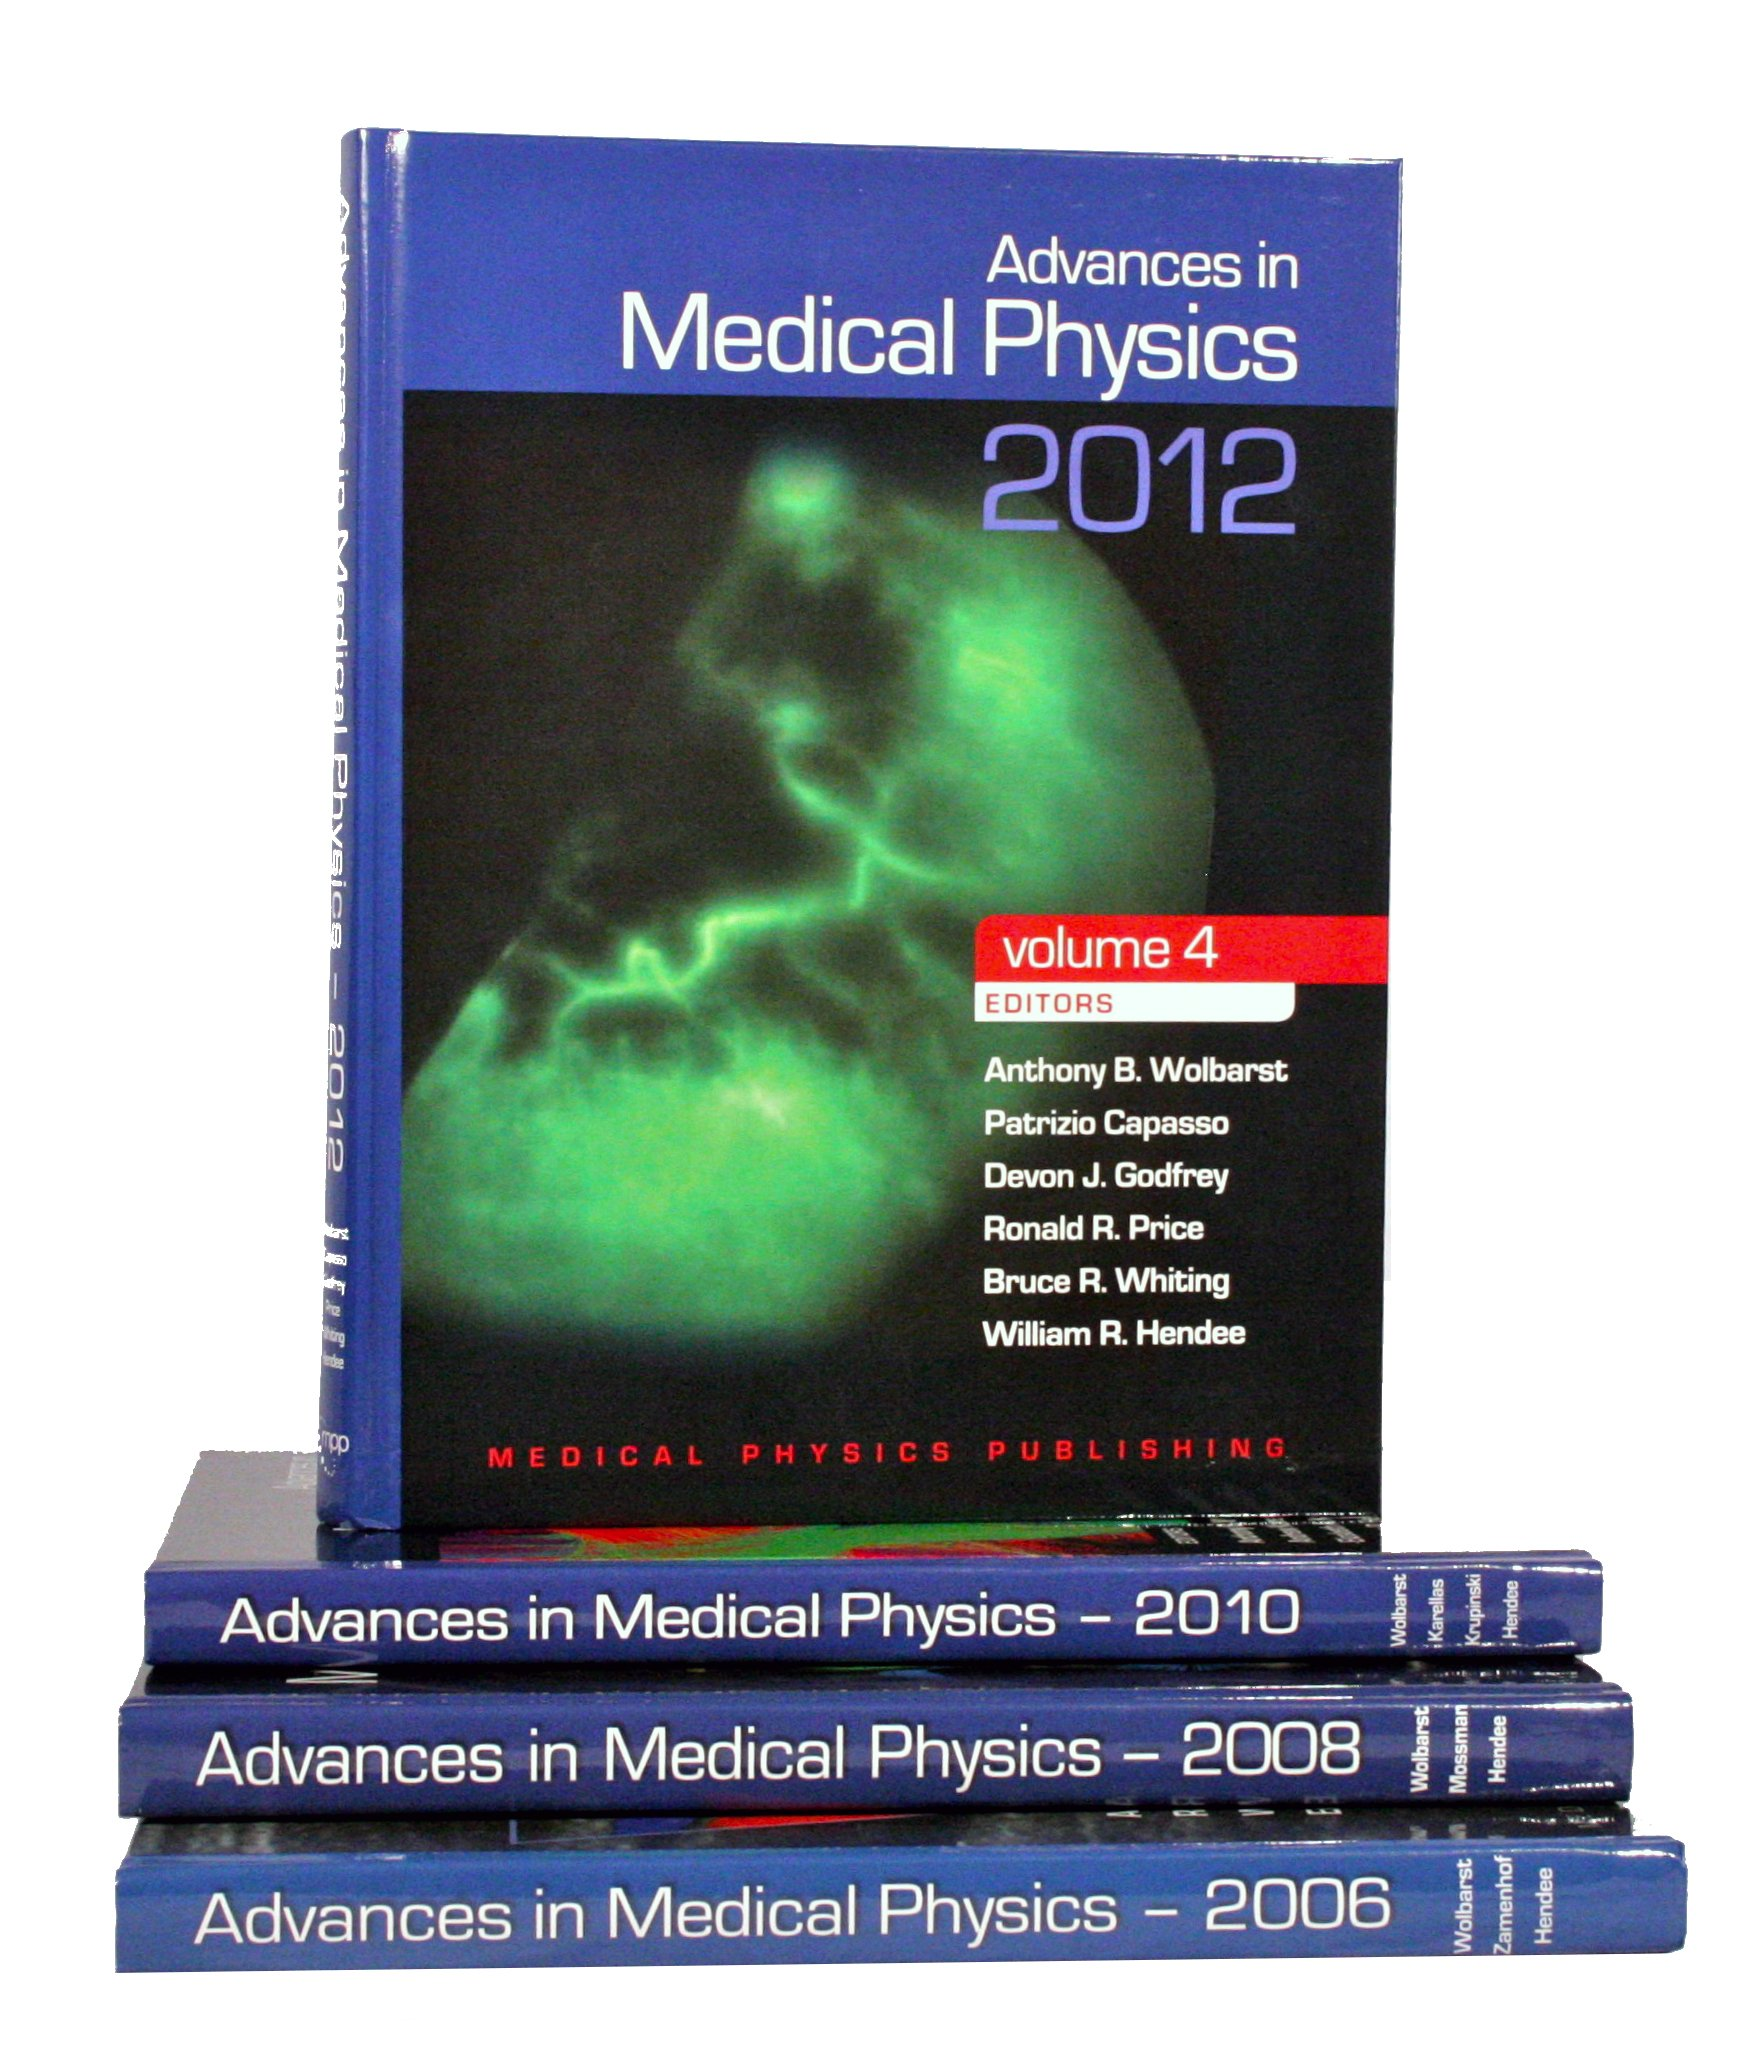 Advances in Medical Physics: Library Special (Volumes 1-4) PDF